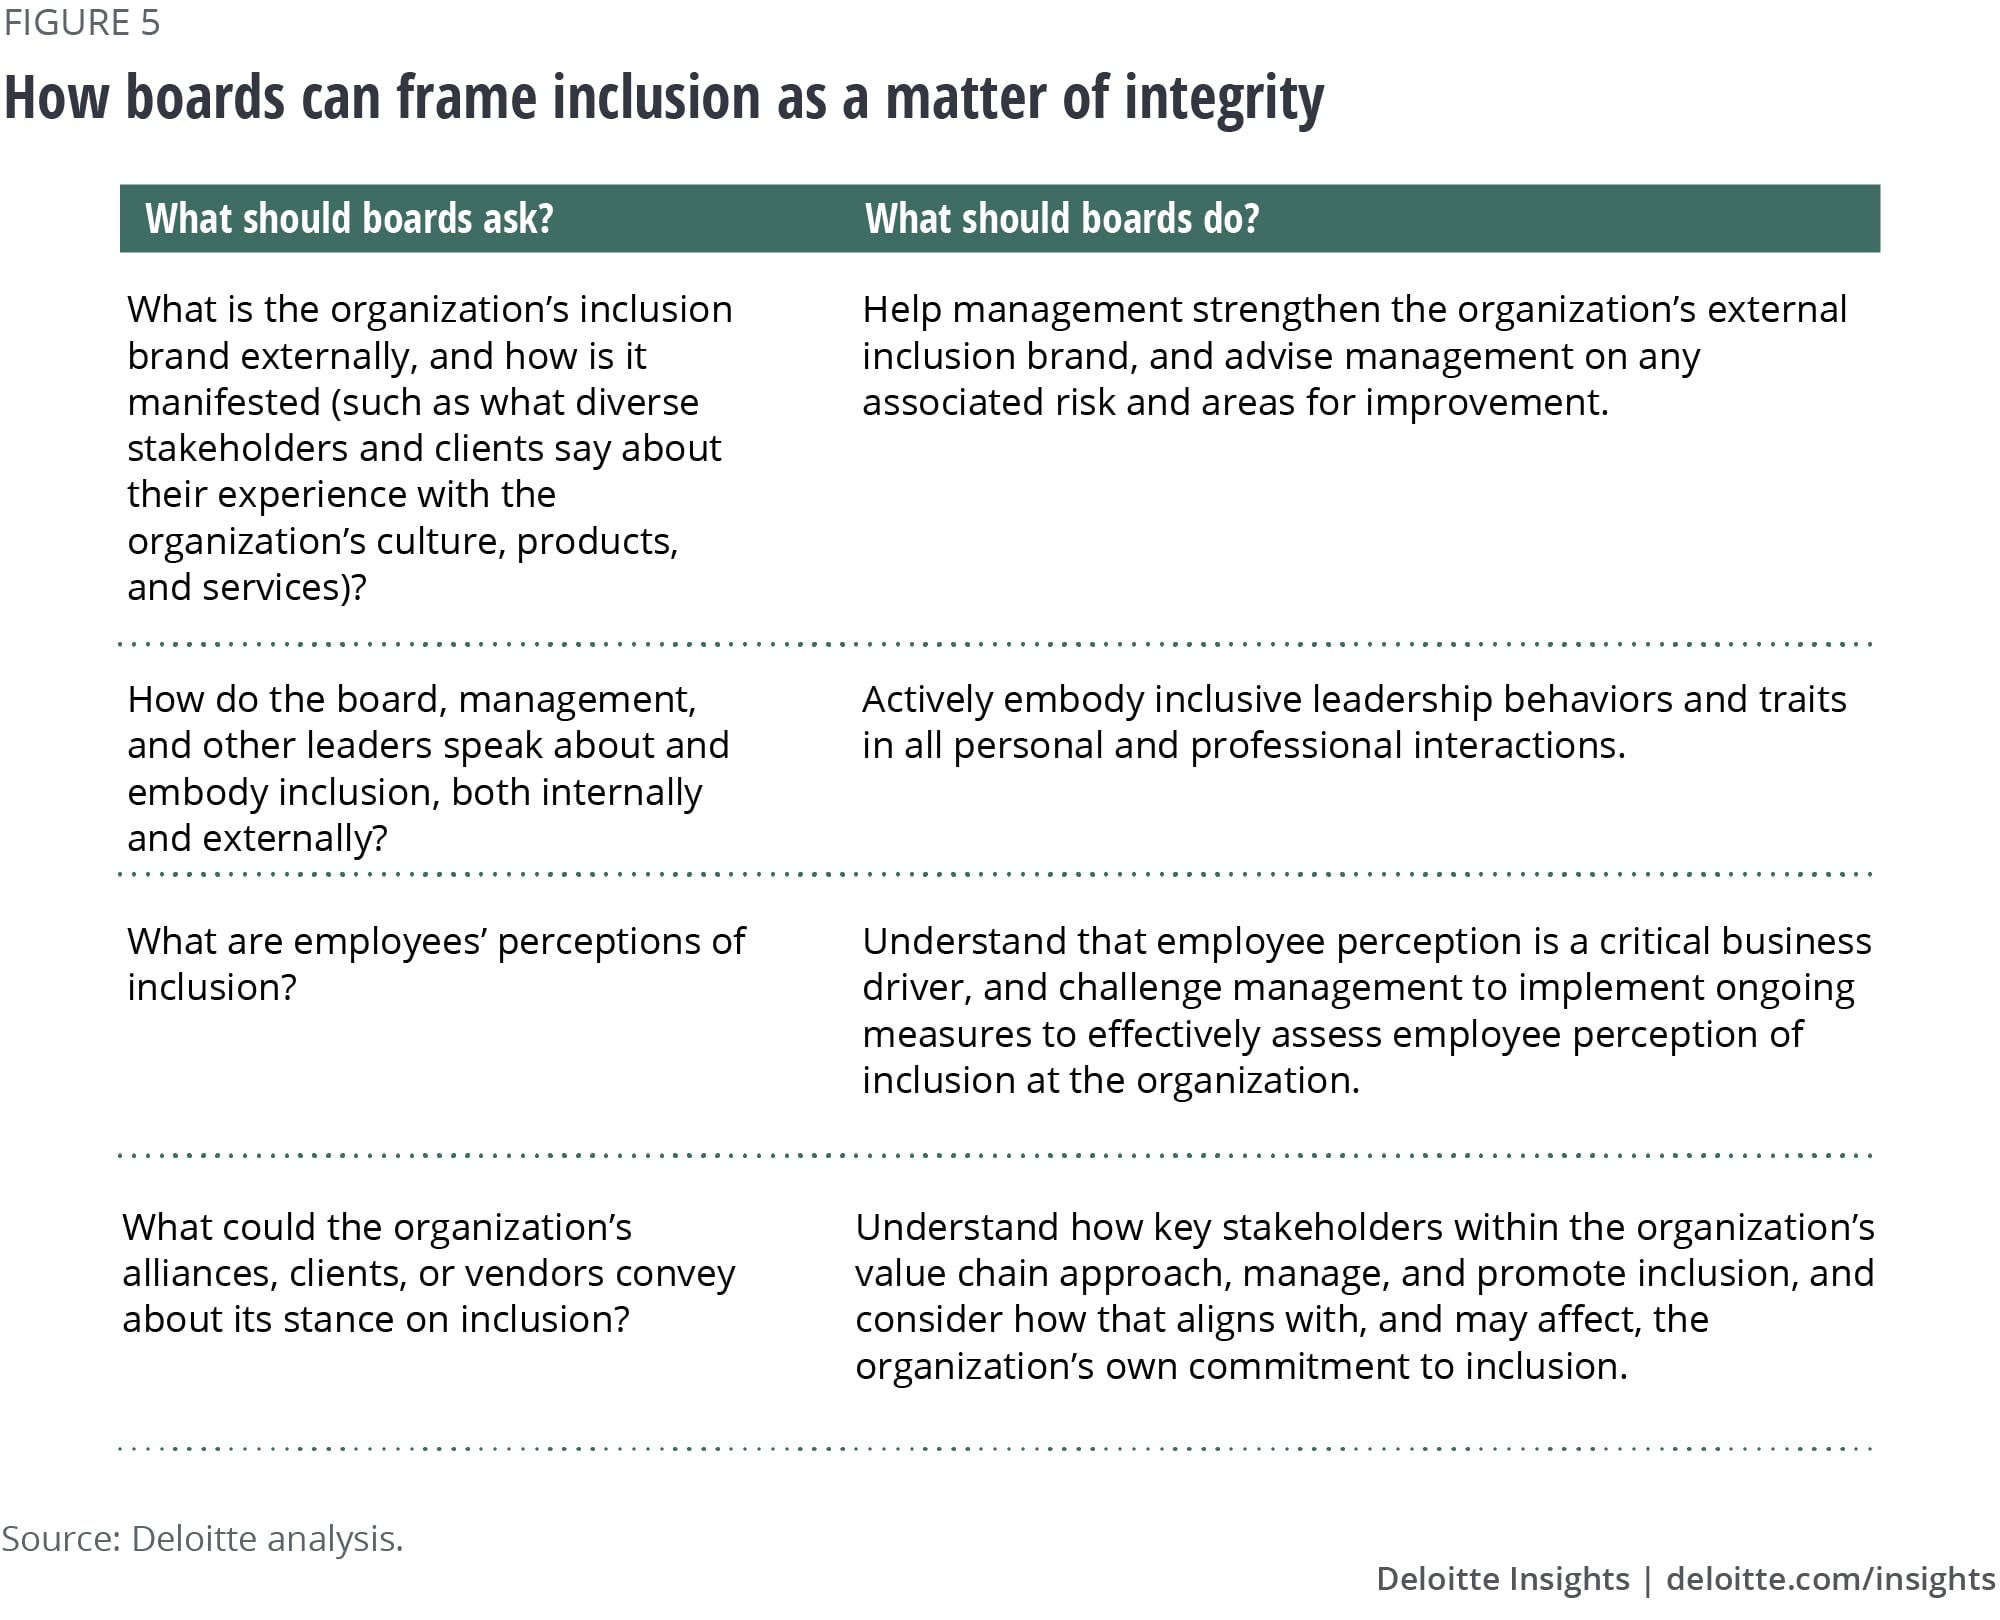 How boards can frame inclusion as a matter of integrity